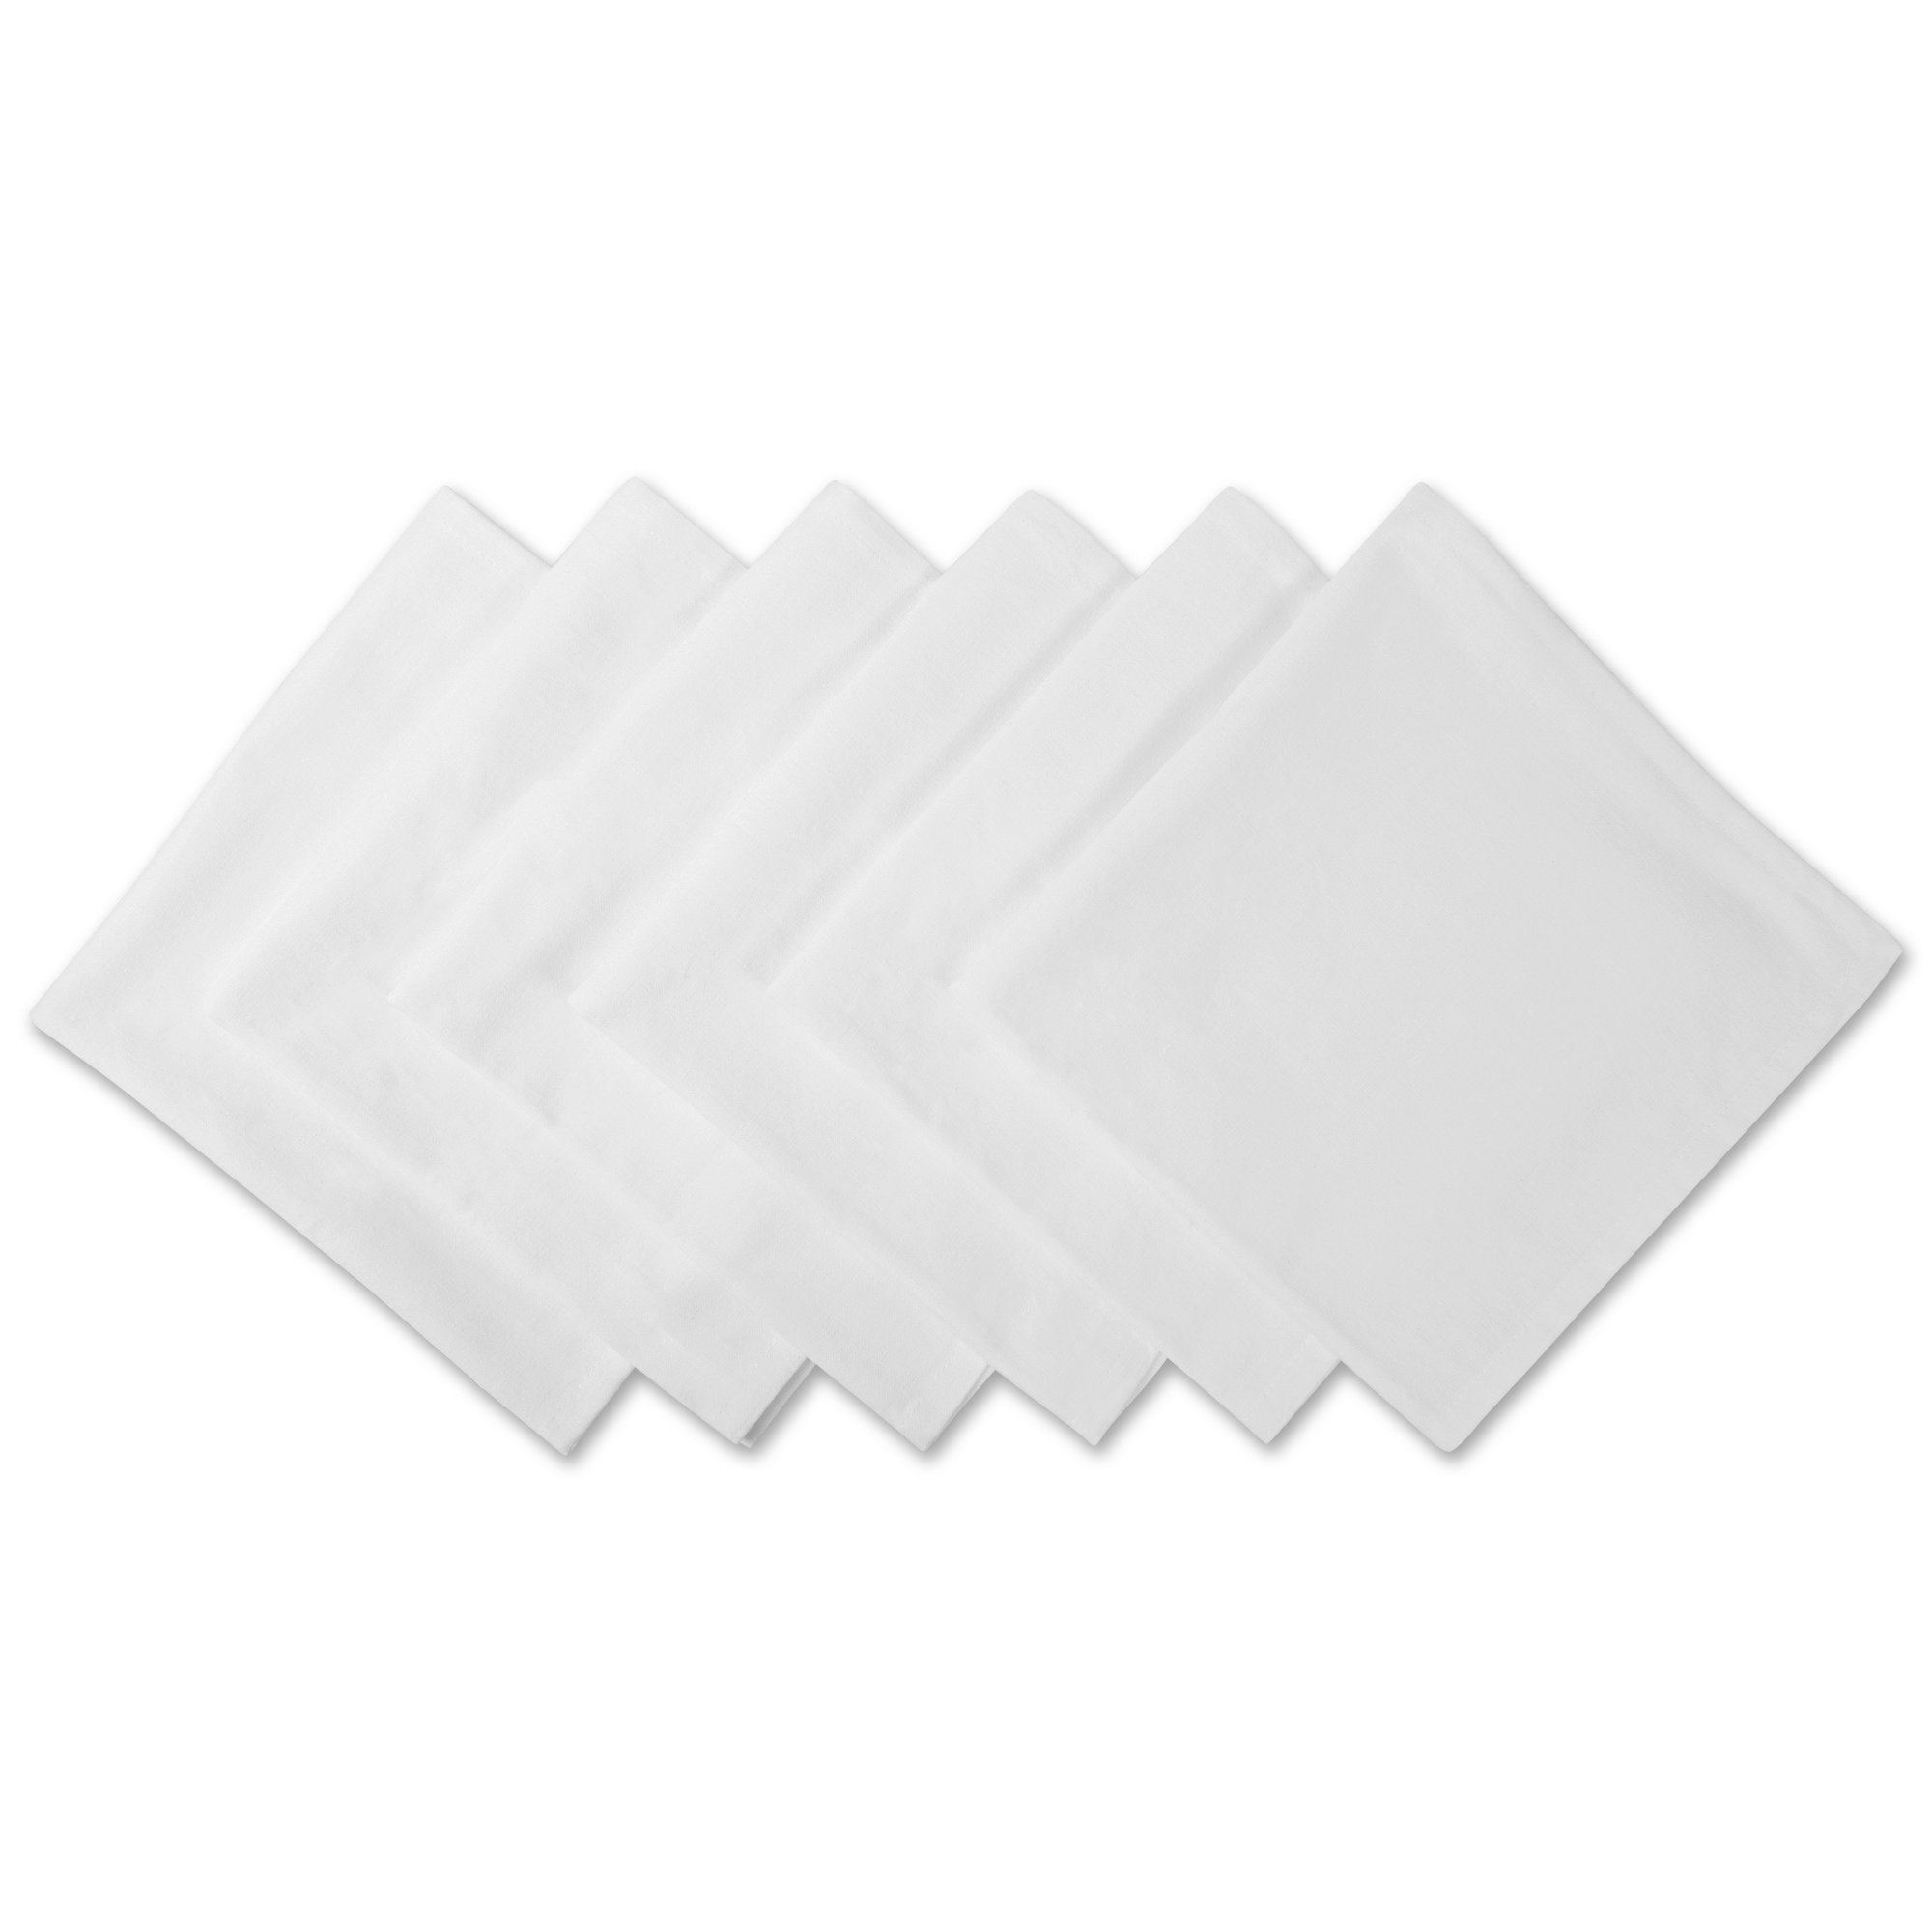 DII 100% Cotton Cloth Napkins, Oversized 20x20 Dinner Napkins, For Basic Everyday Use, Banquets, Weddings, Events, or Family Gatherings - Set of 6, White by DII